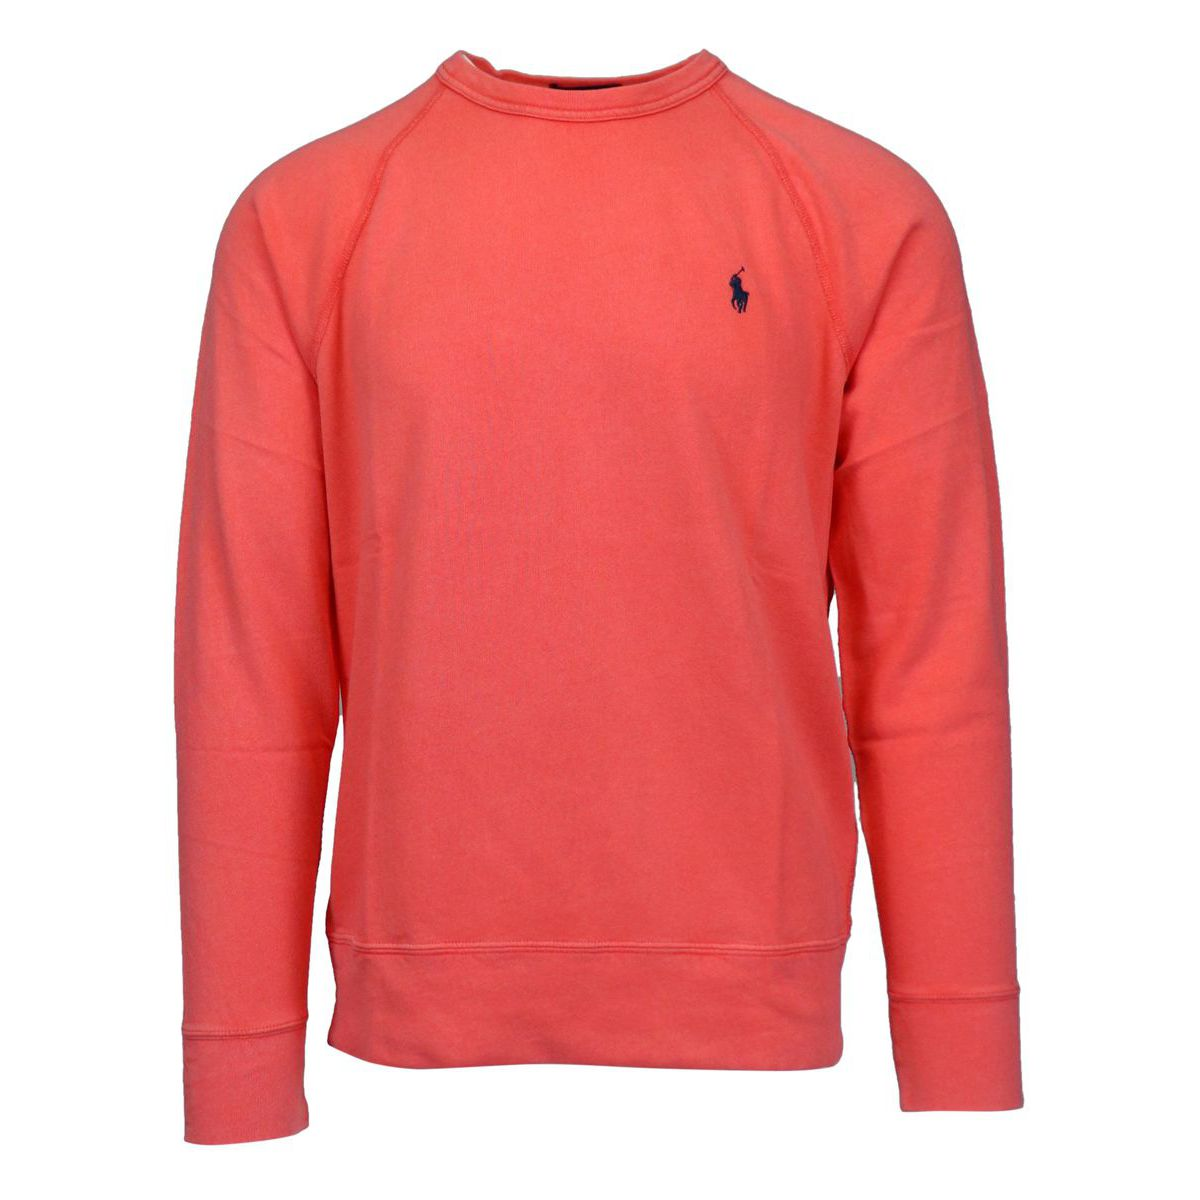 Crewneck cotton sweatshirt with contrasting logo embroidery Coral Polo Ralph Lauren